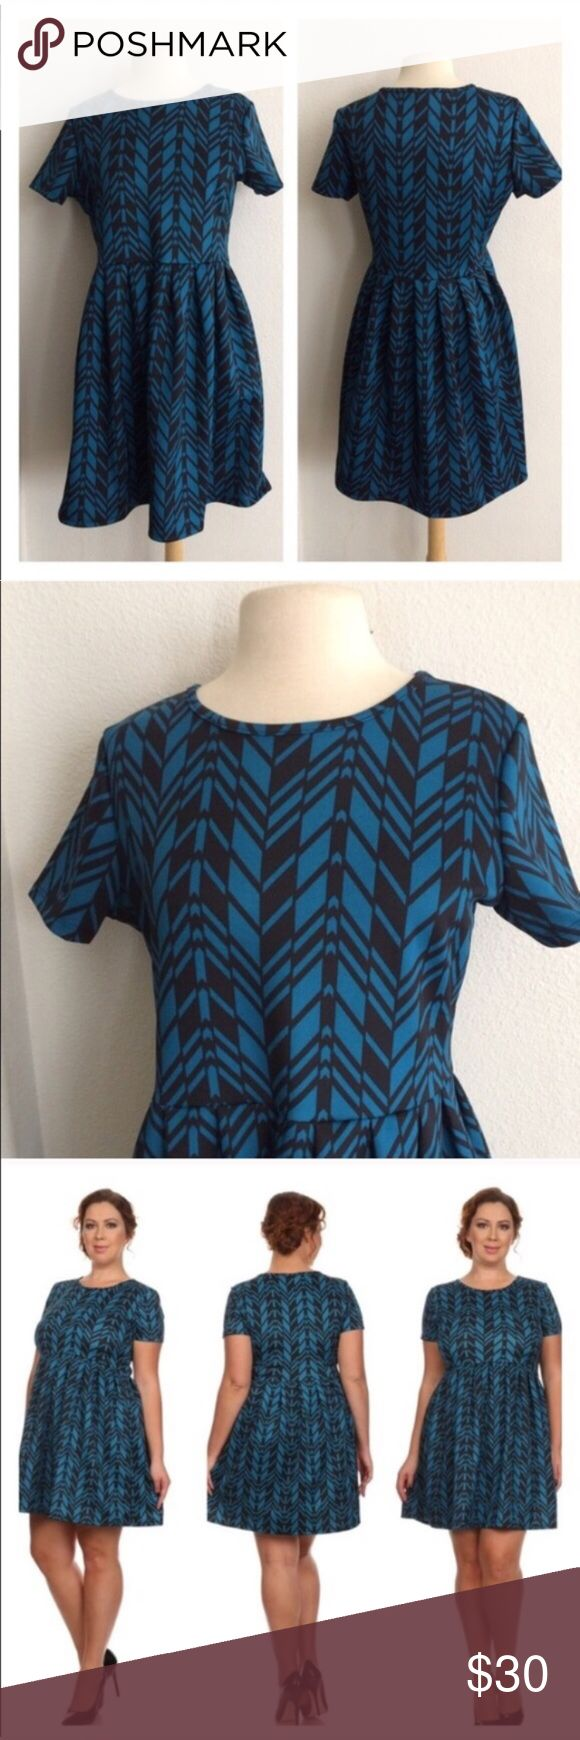 "2 LEFT! (Plus) Blue chevron dress Blue/ black dress. The bottom half is very roomy and the top half has a bit of stretch. 96% polyester/ 4% spandex. True to size. Dress shown in photos is size 1x. Bust stretches well beyond each measurement. May require a slip.  2x- L: 37"" • B: 40"" 3x- L: 38"" • B: 42"" 2x•3x • 1•1 ⭐️This item is brand new with manufacturers tags, boutique tags, or in original packaging. 🚫NO TRADES 💲Price is firm unless bundled 💰Ask about bundle discounts Dresses"